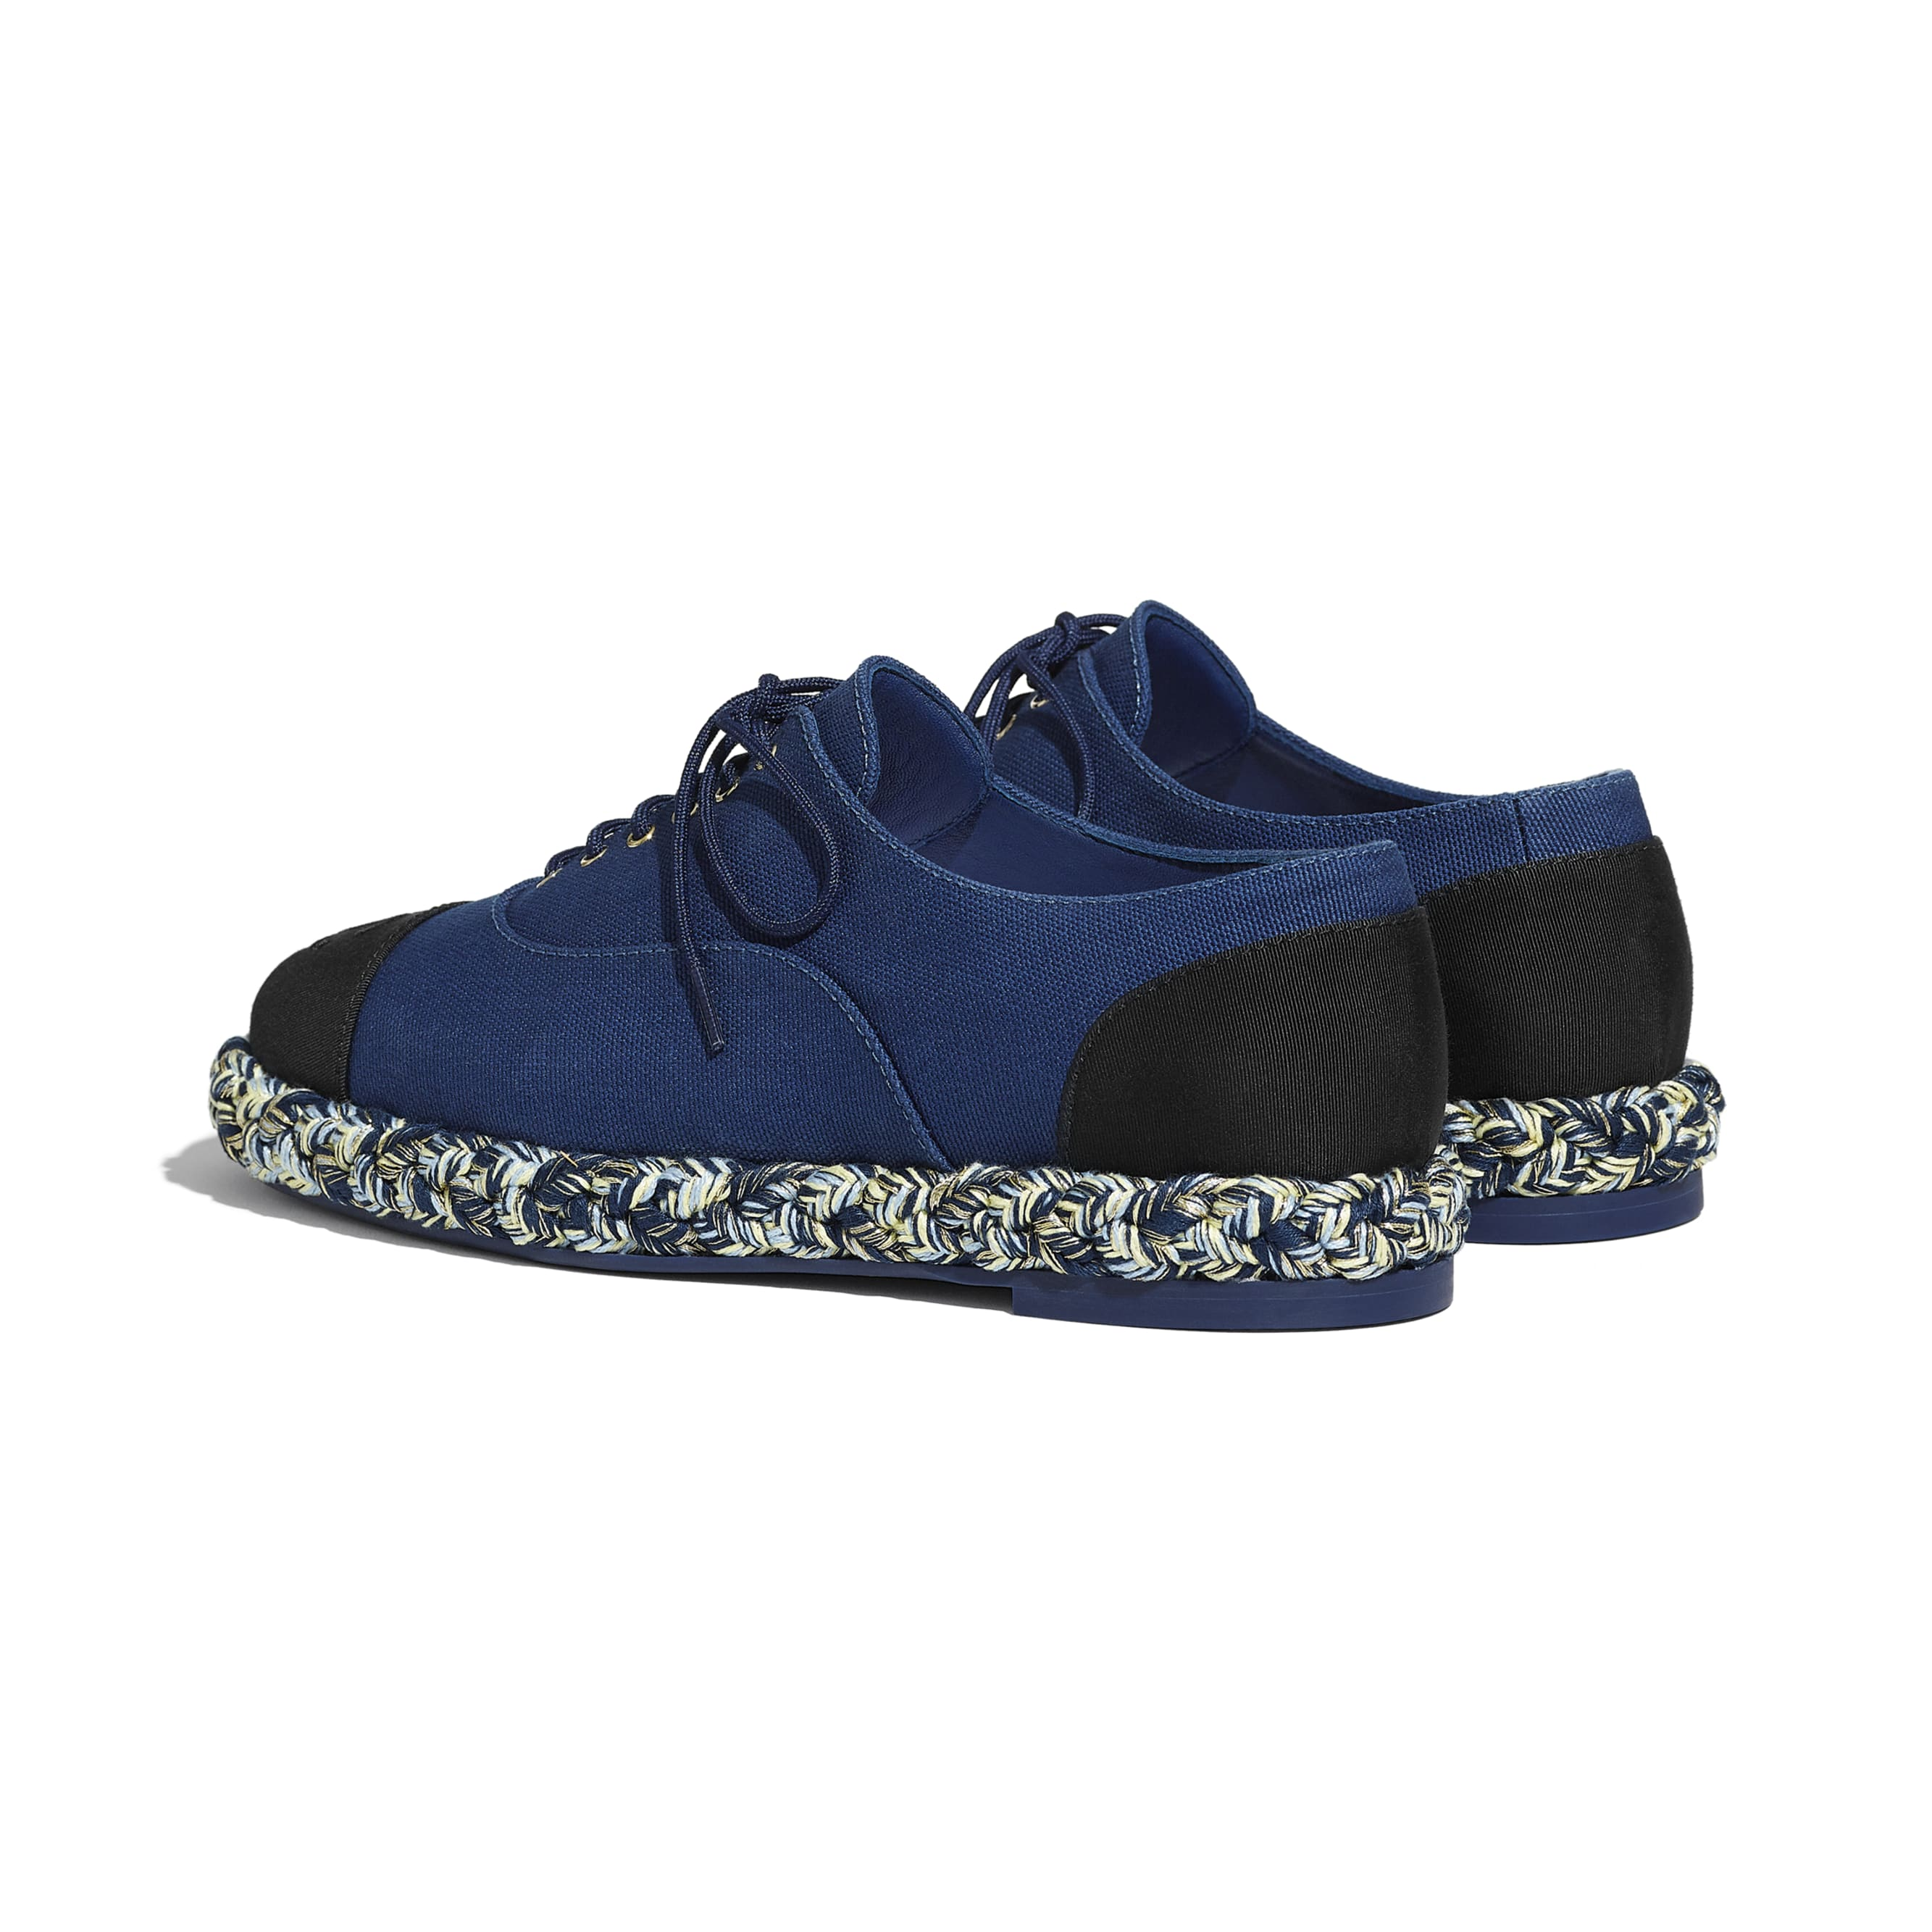 Lace-Ups - Navy Blue & Black - Cotton & Grosgrain - CHANEL - Other view - see standard sized version